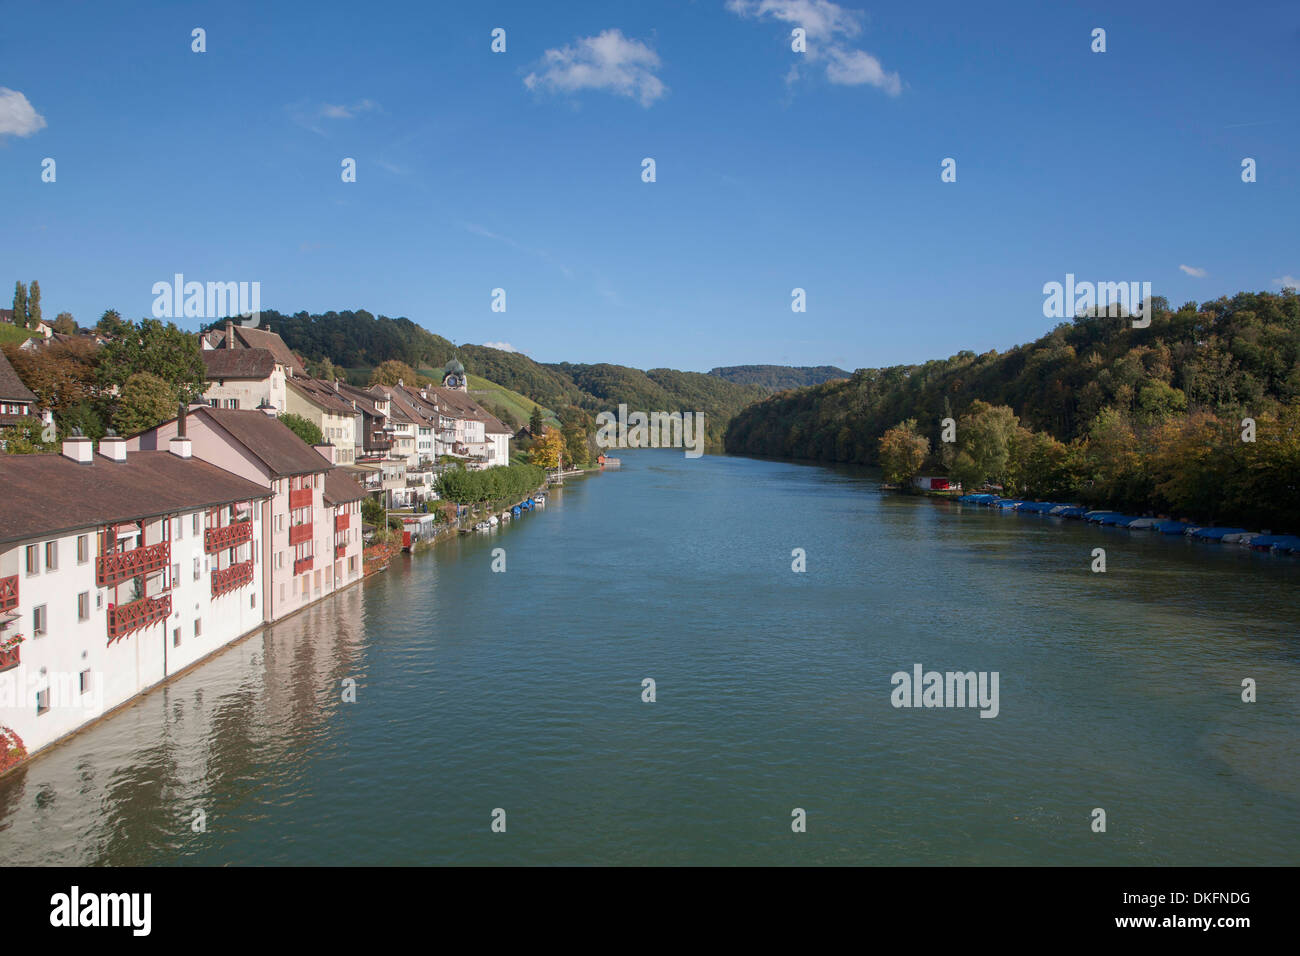 eglisau, rhine river, canton zurich, switzerland Stock Photo